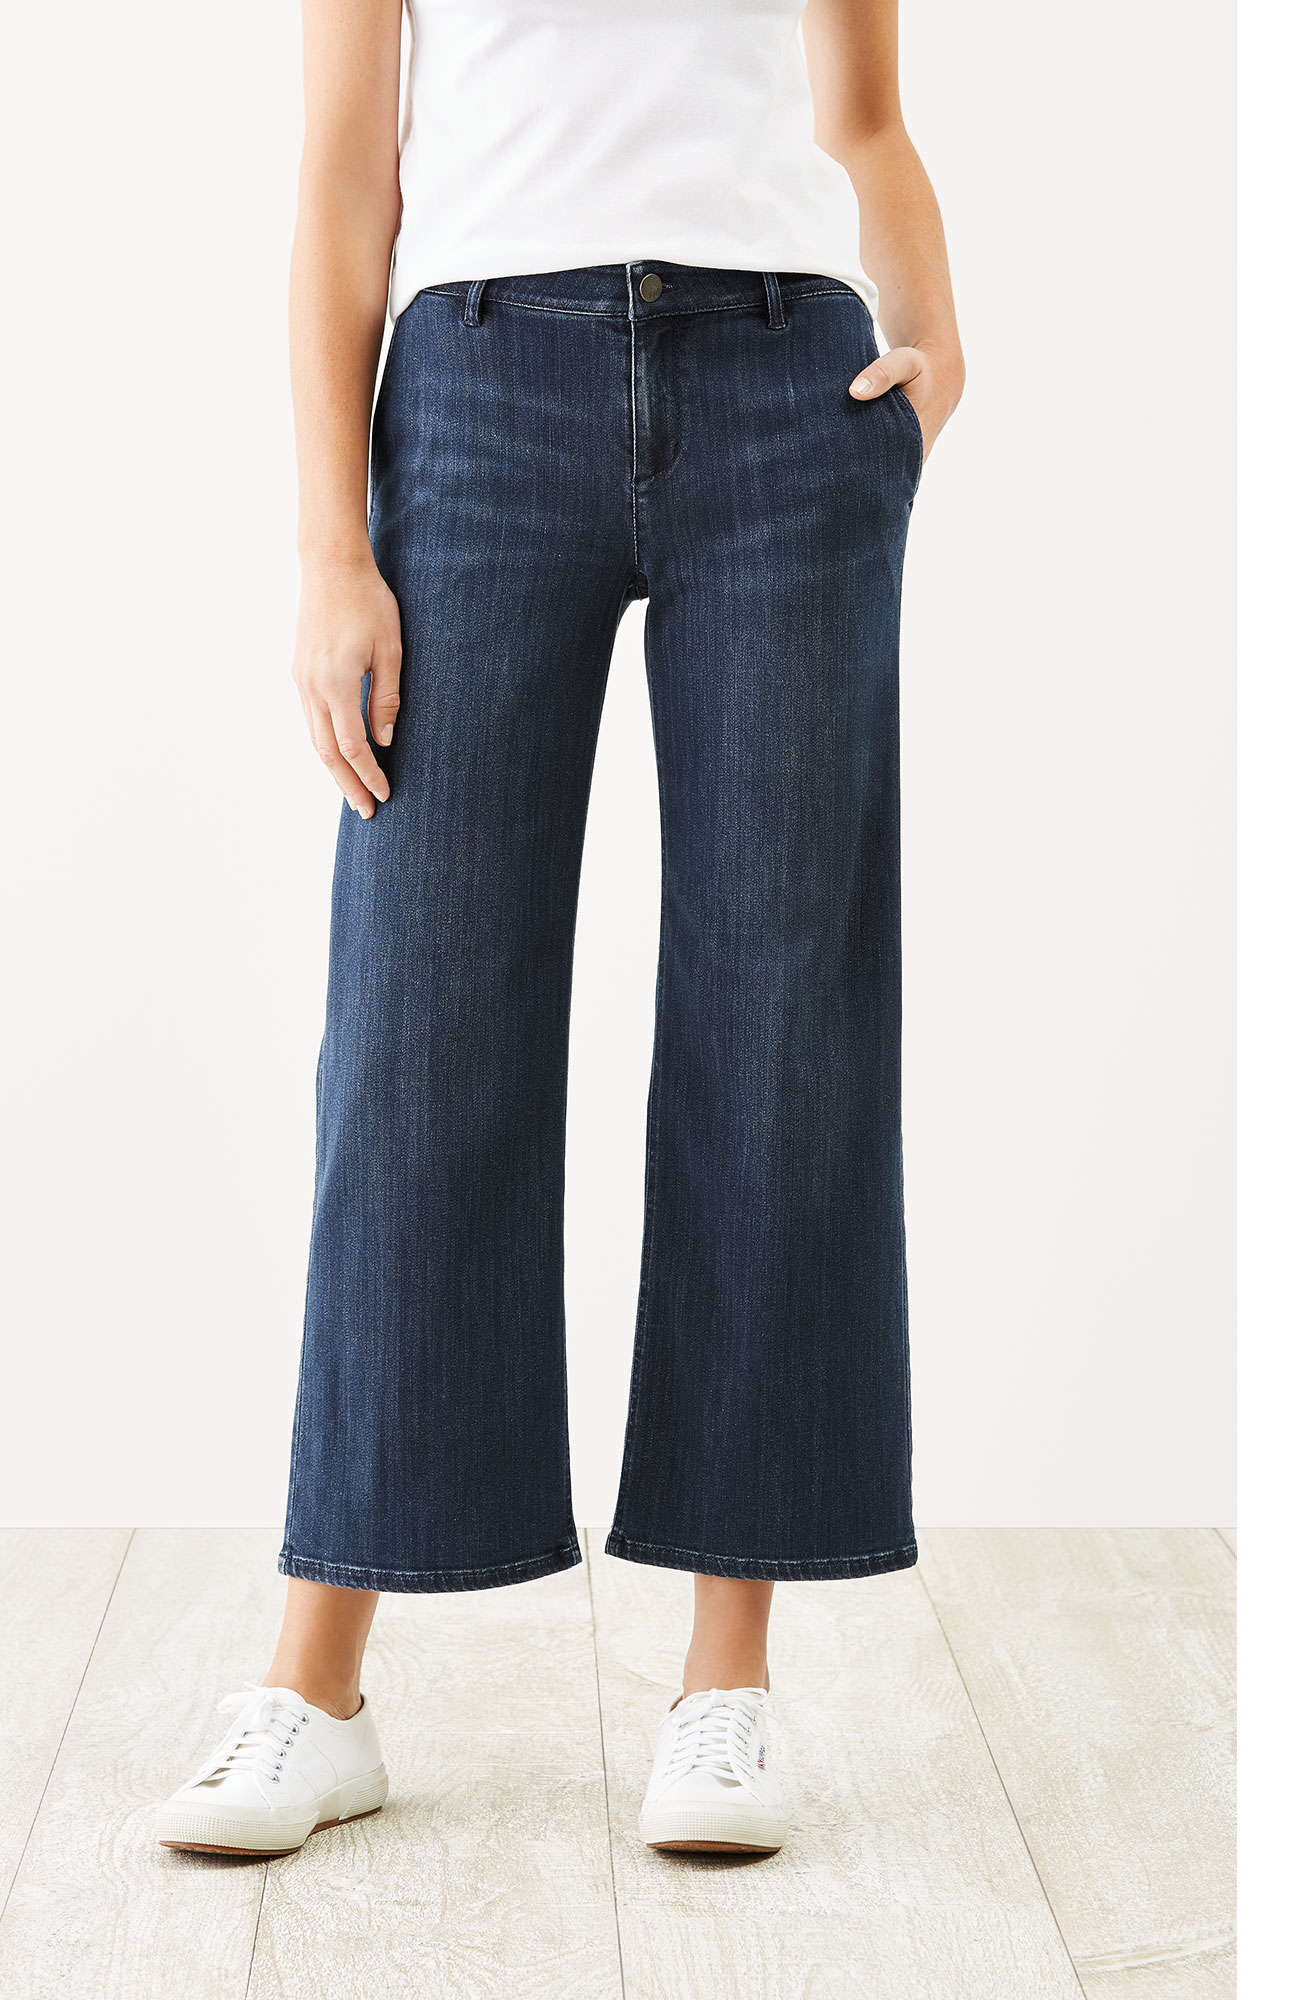 denim-stretch full-leg crops